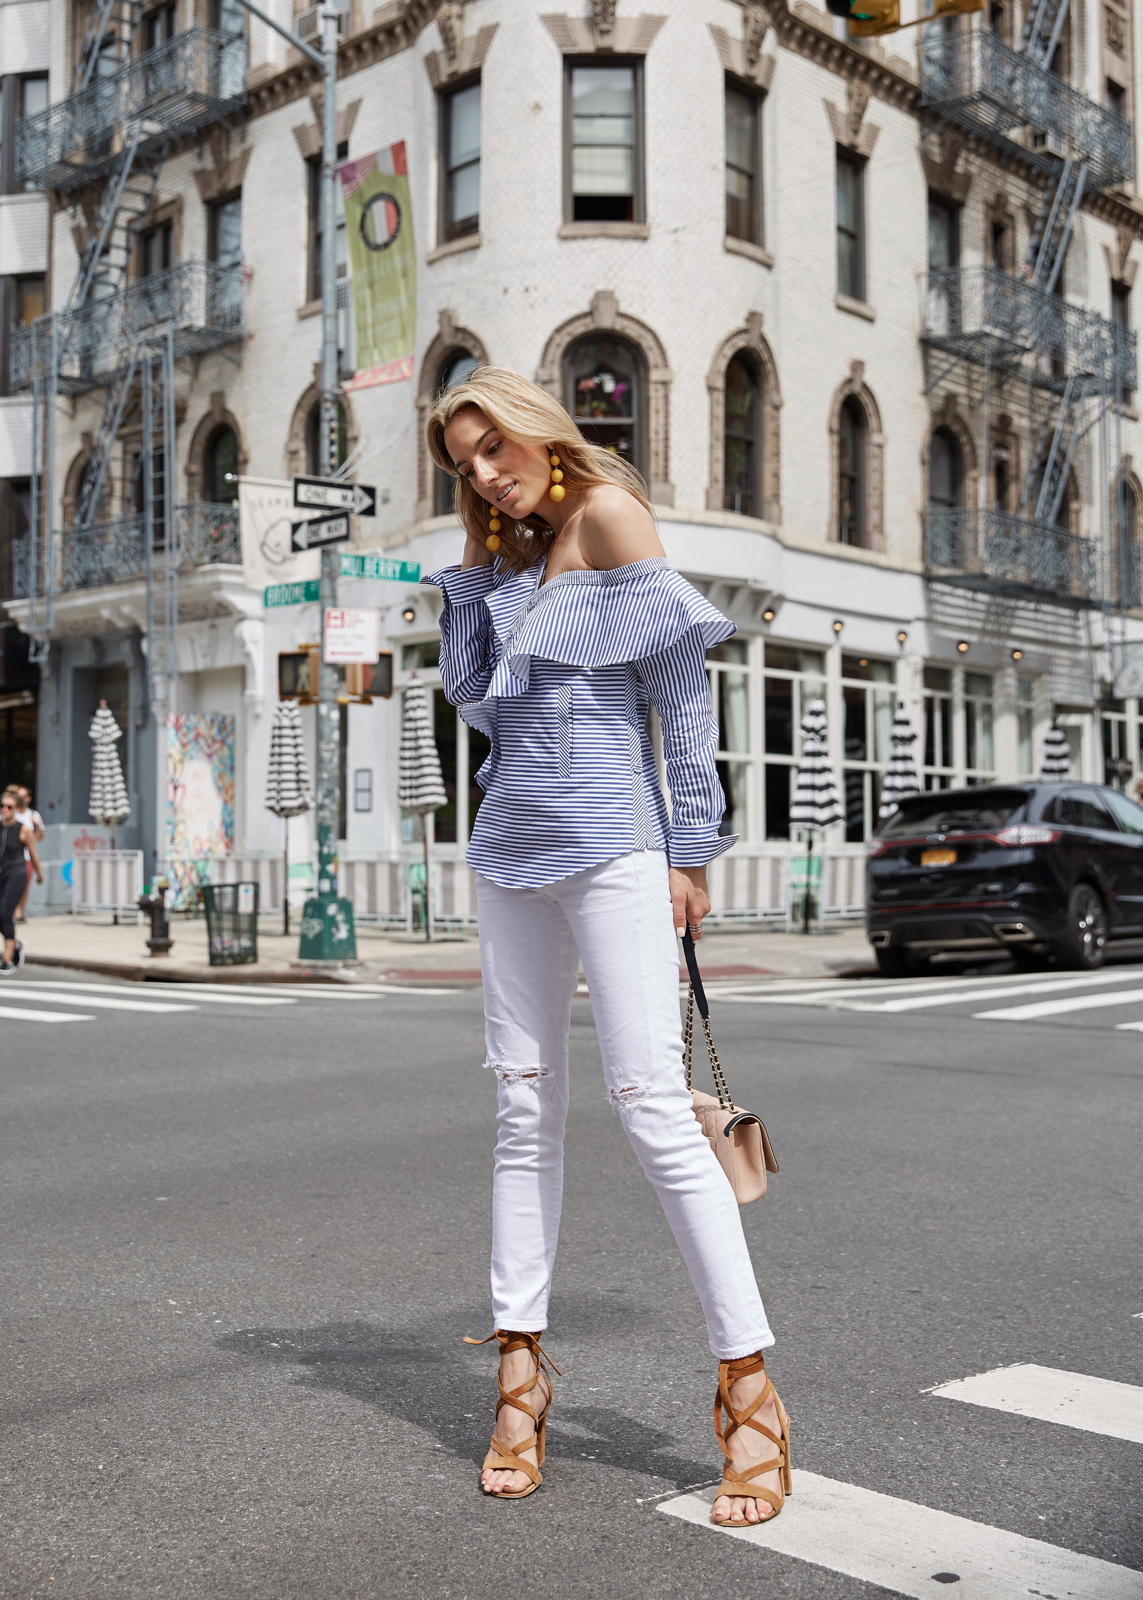 Self-Portrait stripe ruffle top, white jeans, Giavito Rossi Sandals, Yellow earrings, Chanel Bag